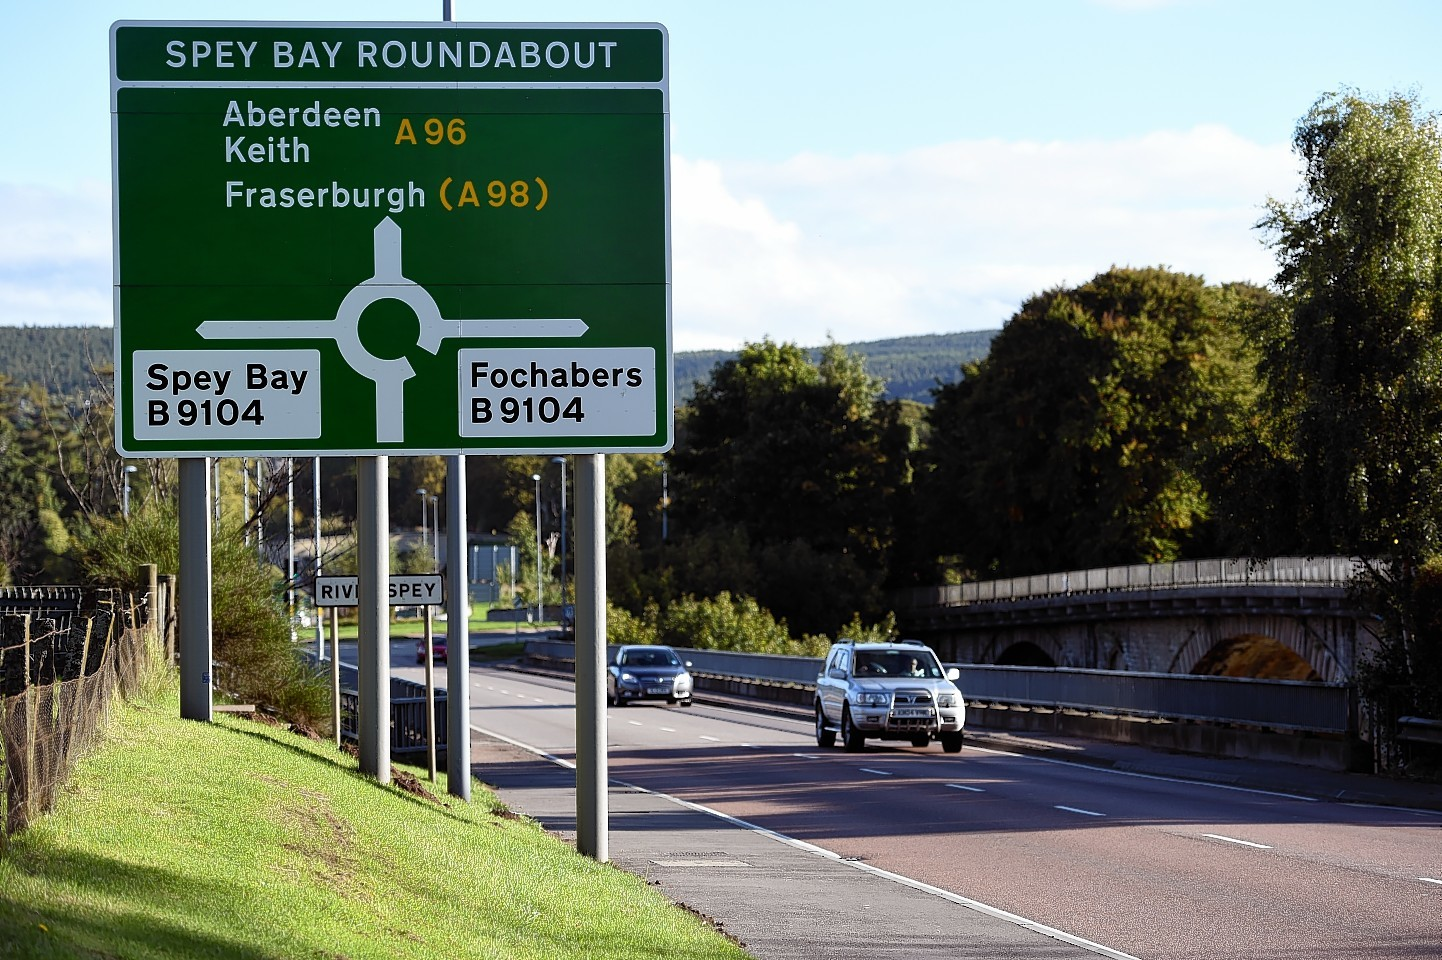 A96 is to be dualled up to Fochabers